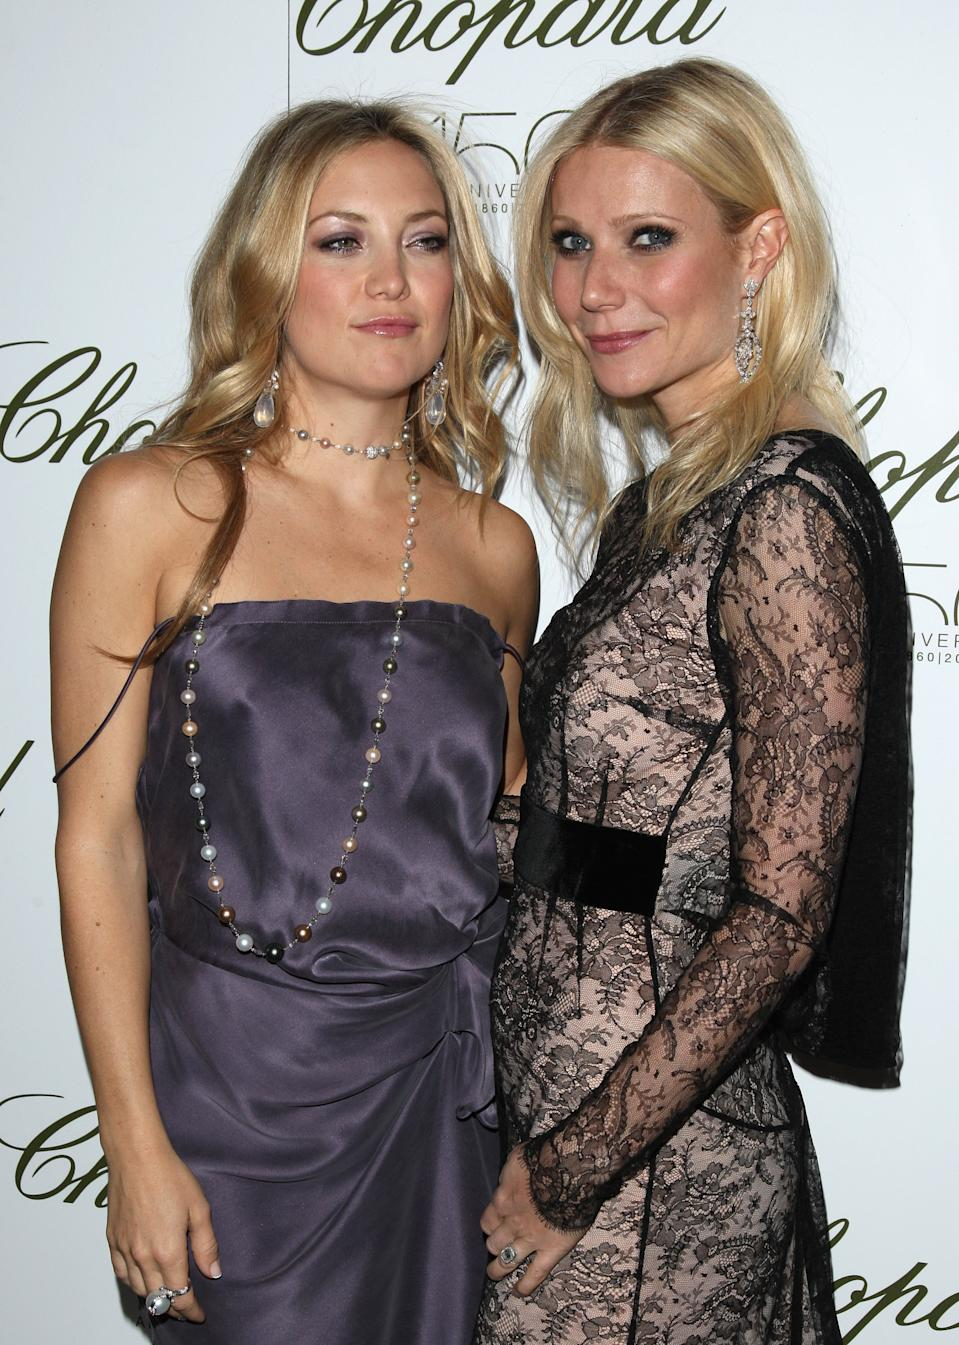 Kate Hudson and Gwyneth Paltrow attend the 150th anniversary of Chopard gala at The Frick Collection in New York, on Thursday, April 29, 2010. (AP Photo/Peter Kramer)